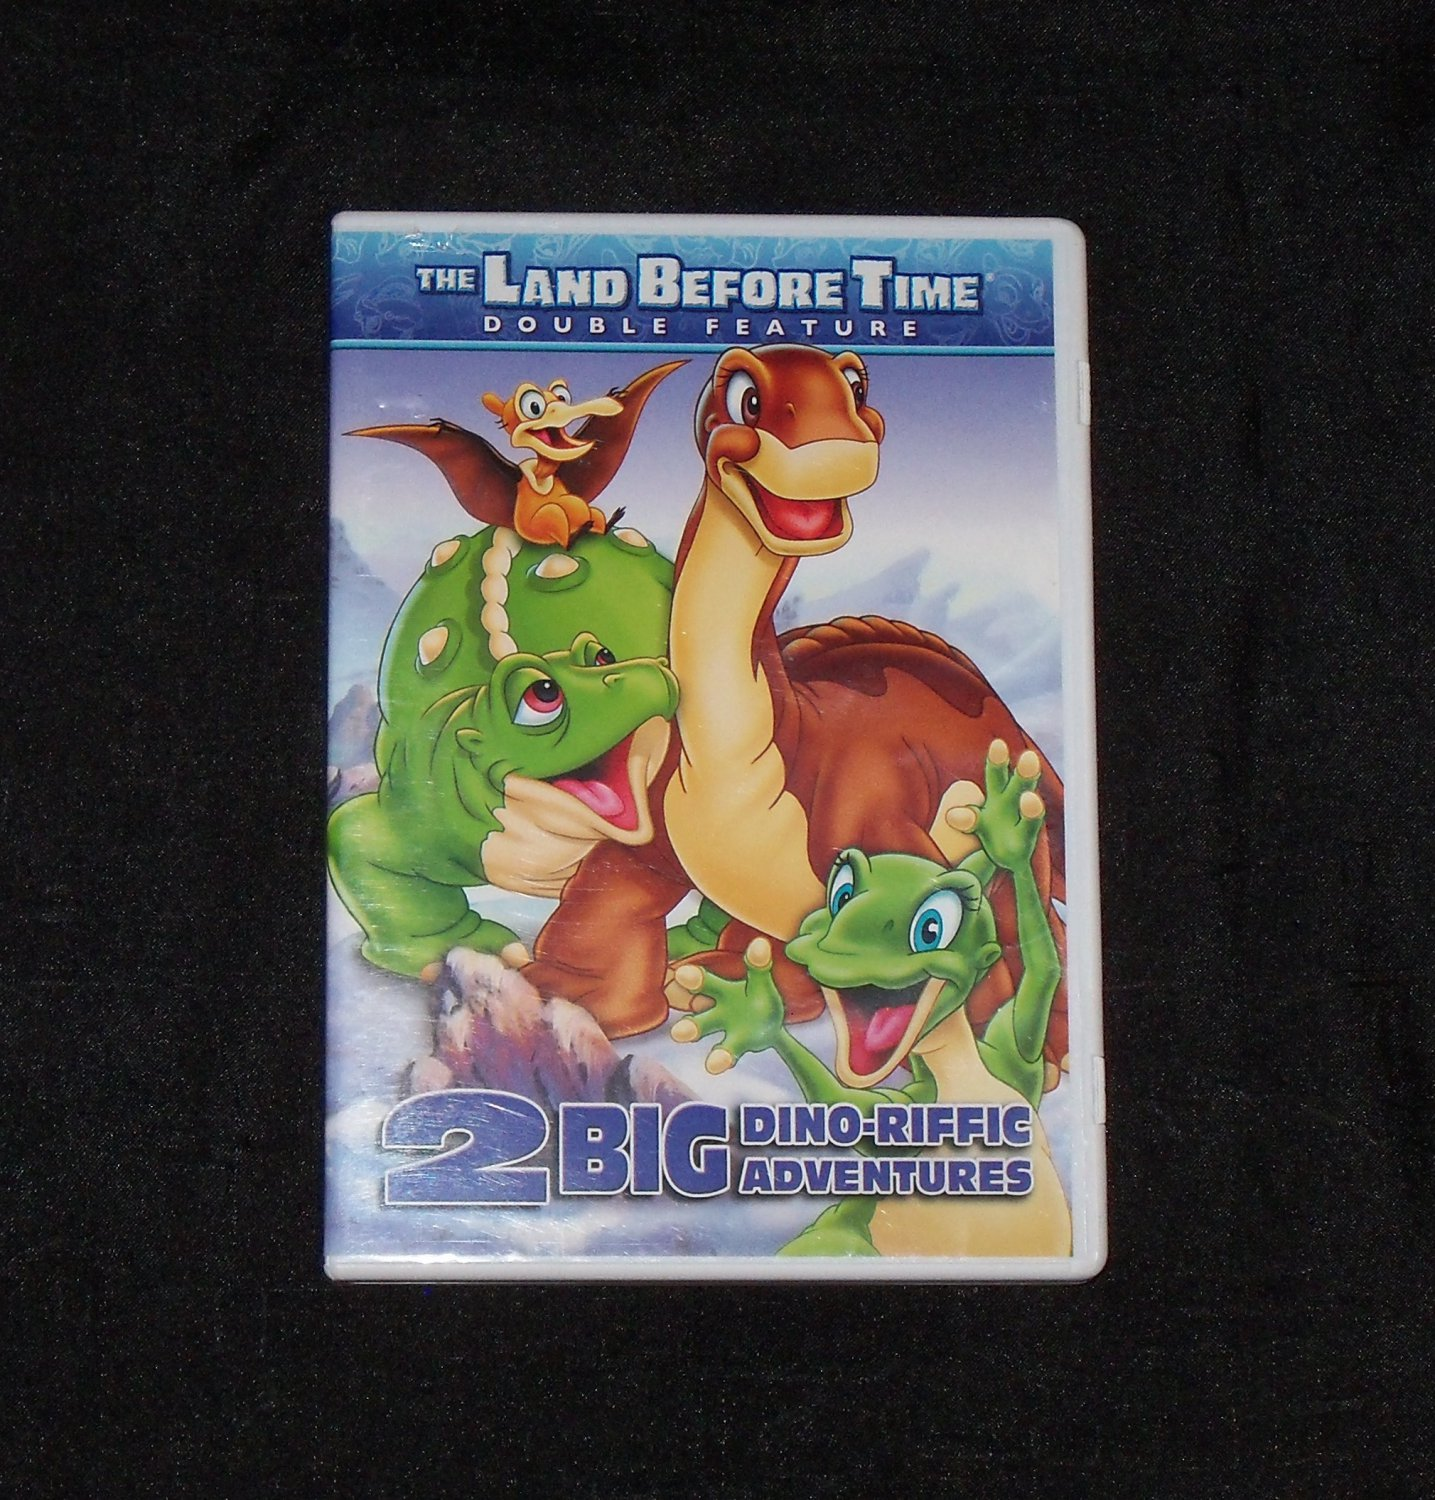 The Land Before Time Double Feature DVD